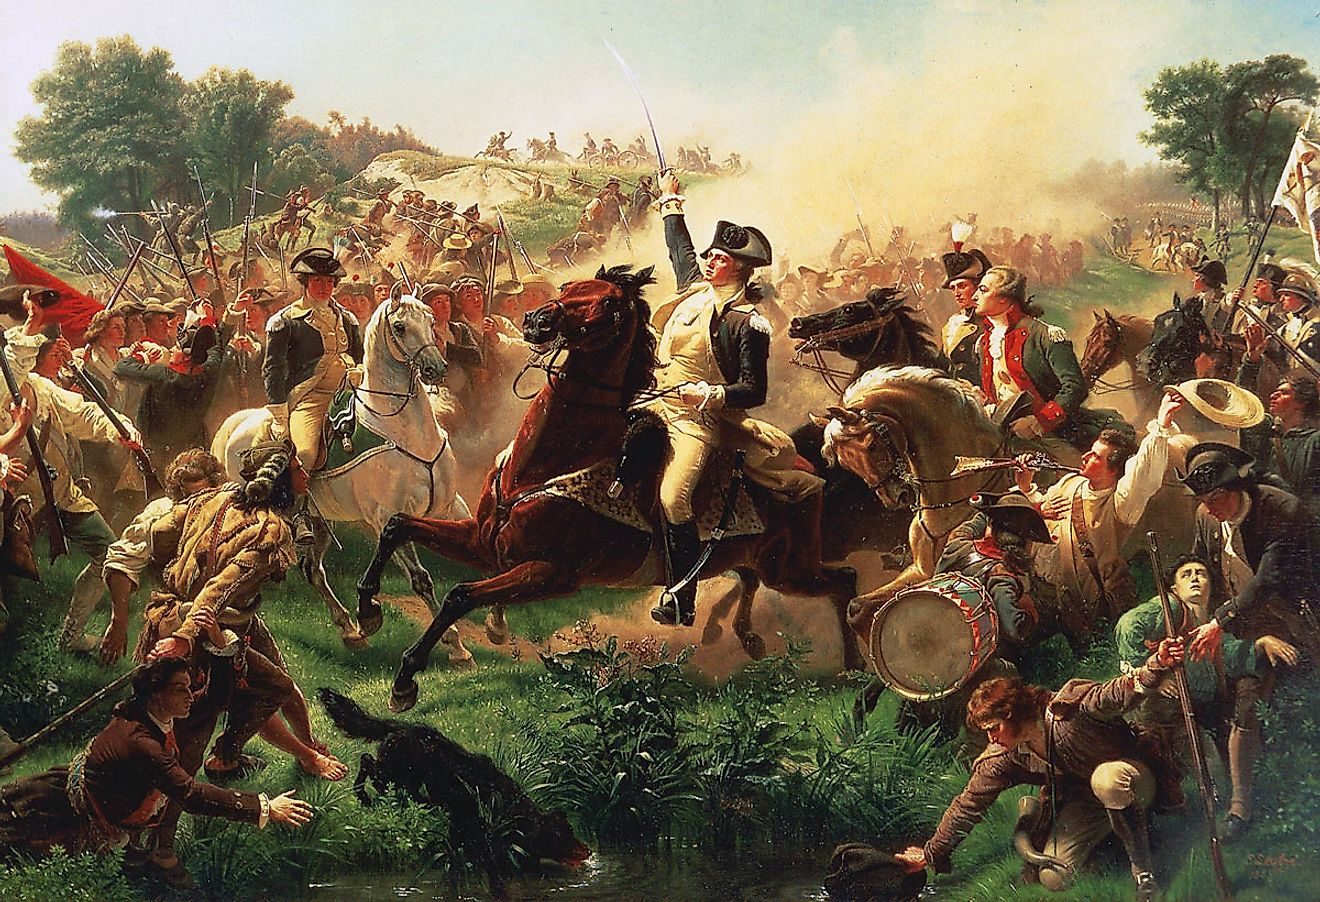 Washington Rallying the Troops at Monmouth. Image credit: Emanuel Leutze / Public domain